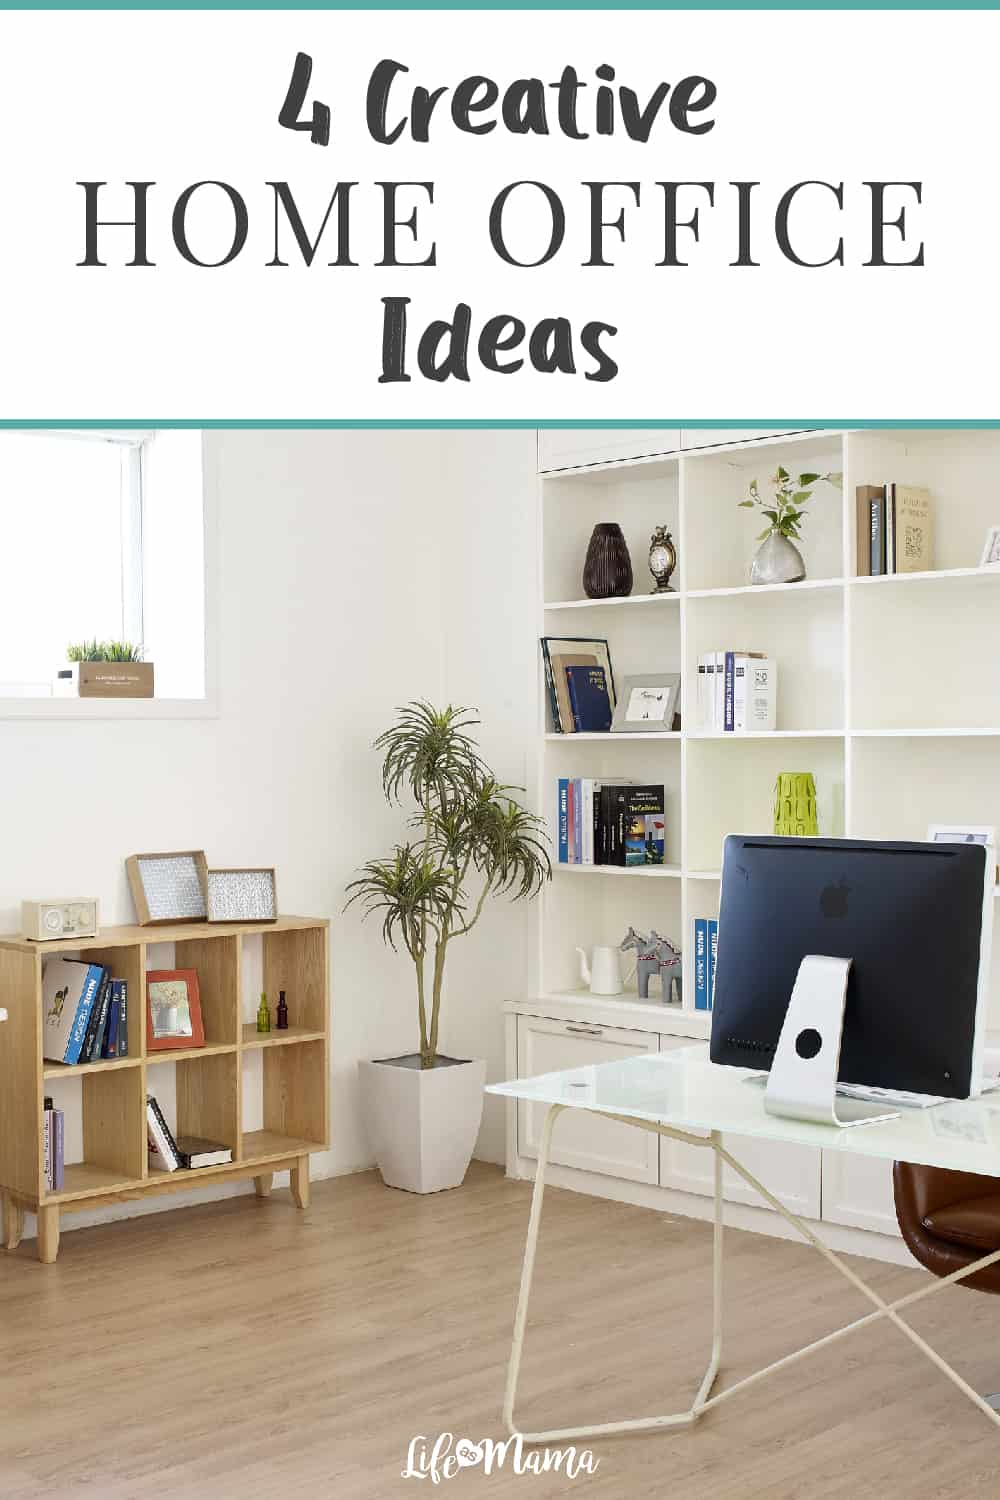 4 Creative Home Office Ideas-01-02